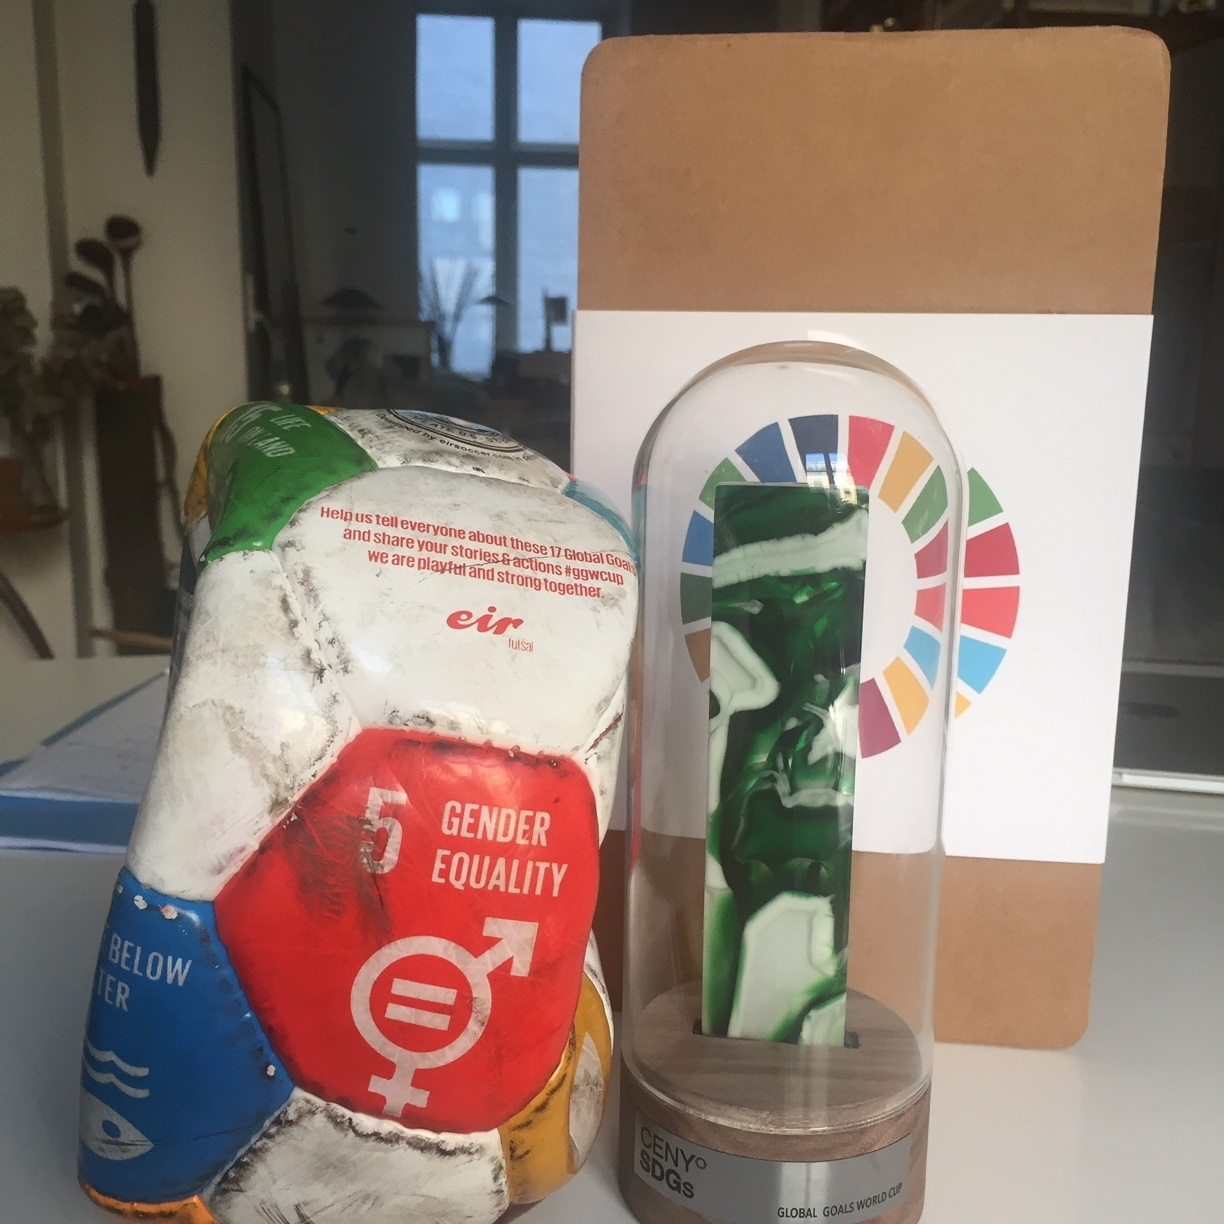 SDG Award Gala & Award - The Czech Republic and the Association of Social Responsibility honored us with a special SDG Award for our work for the Global Goals.The trophy is design by Linda Matějovská @qdesigners.co (IG) and made out of recycled glass. The ball is one of the GGWCup Prague game balls.